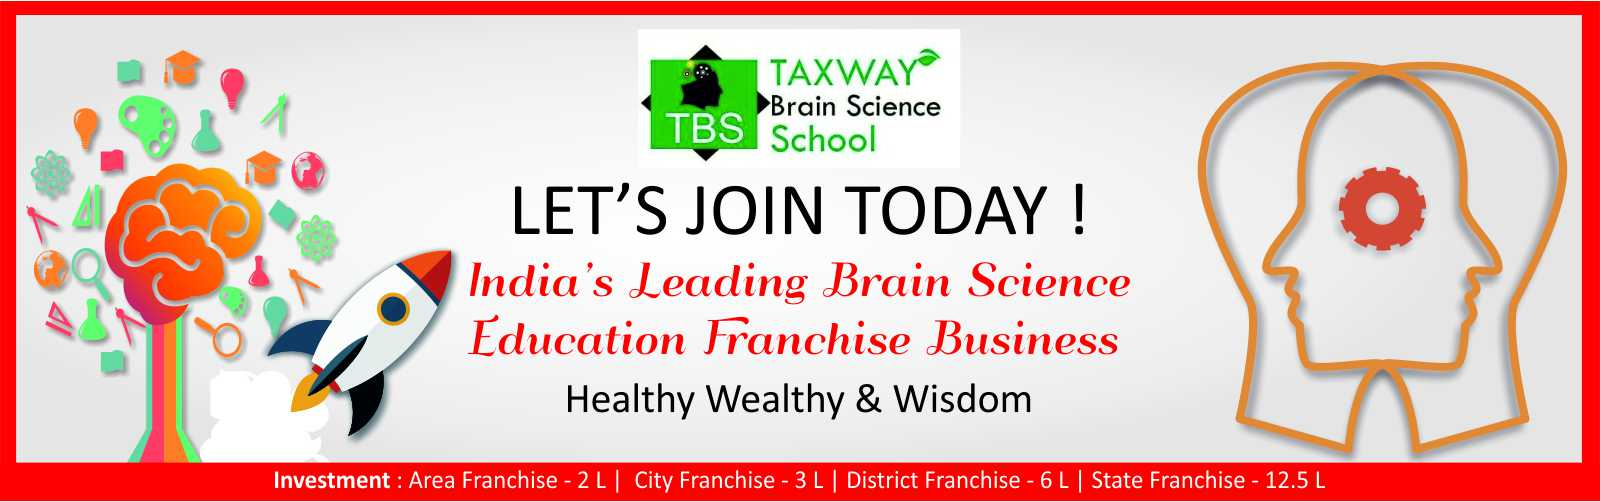 admin/photos/Taxway Brain Science